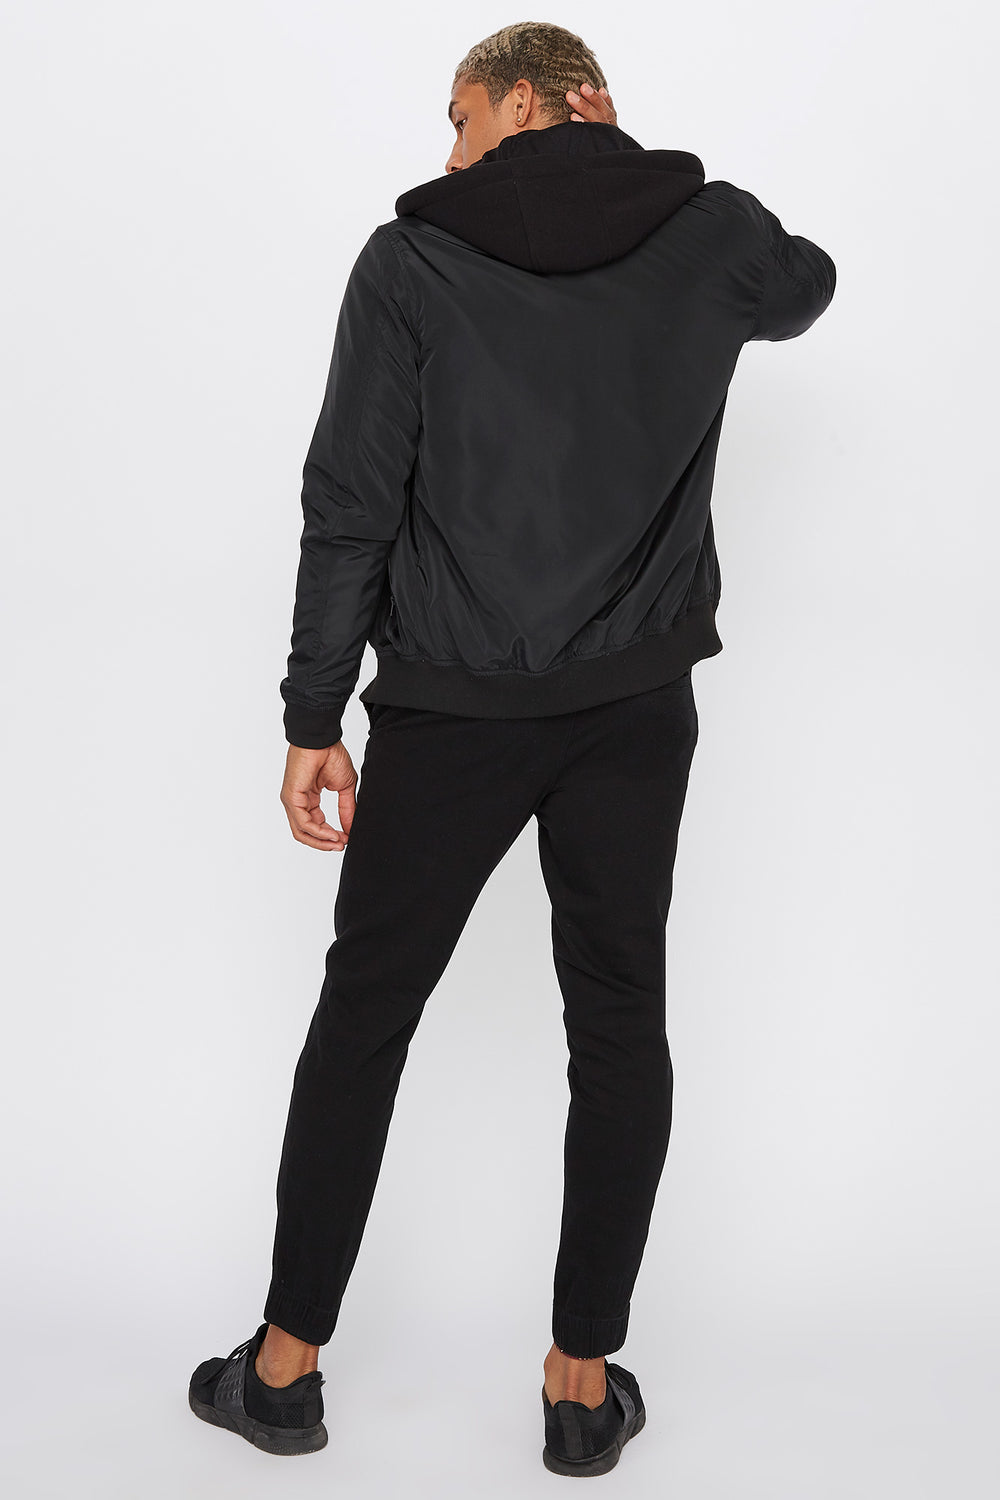 Solid Basic Jogger Black